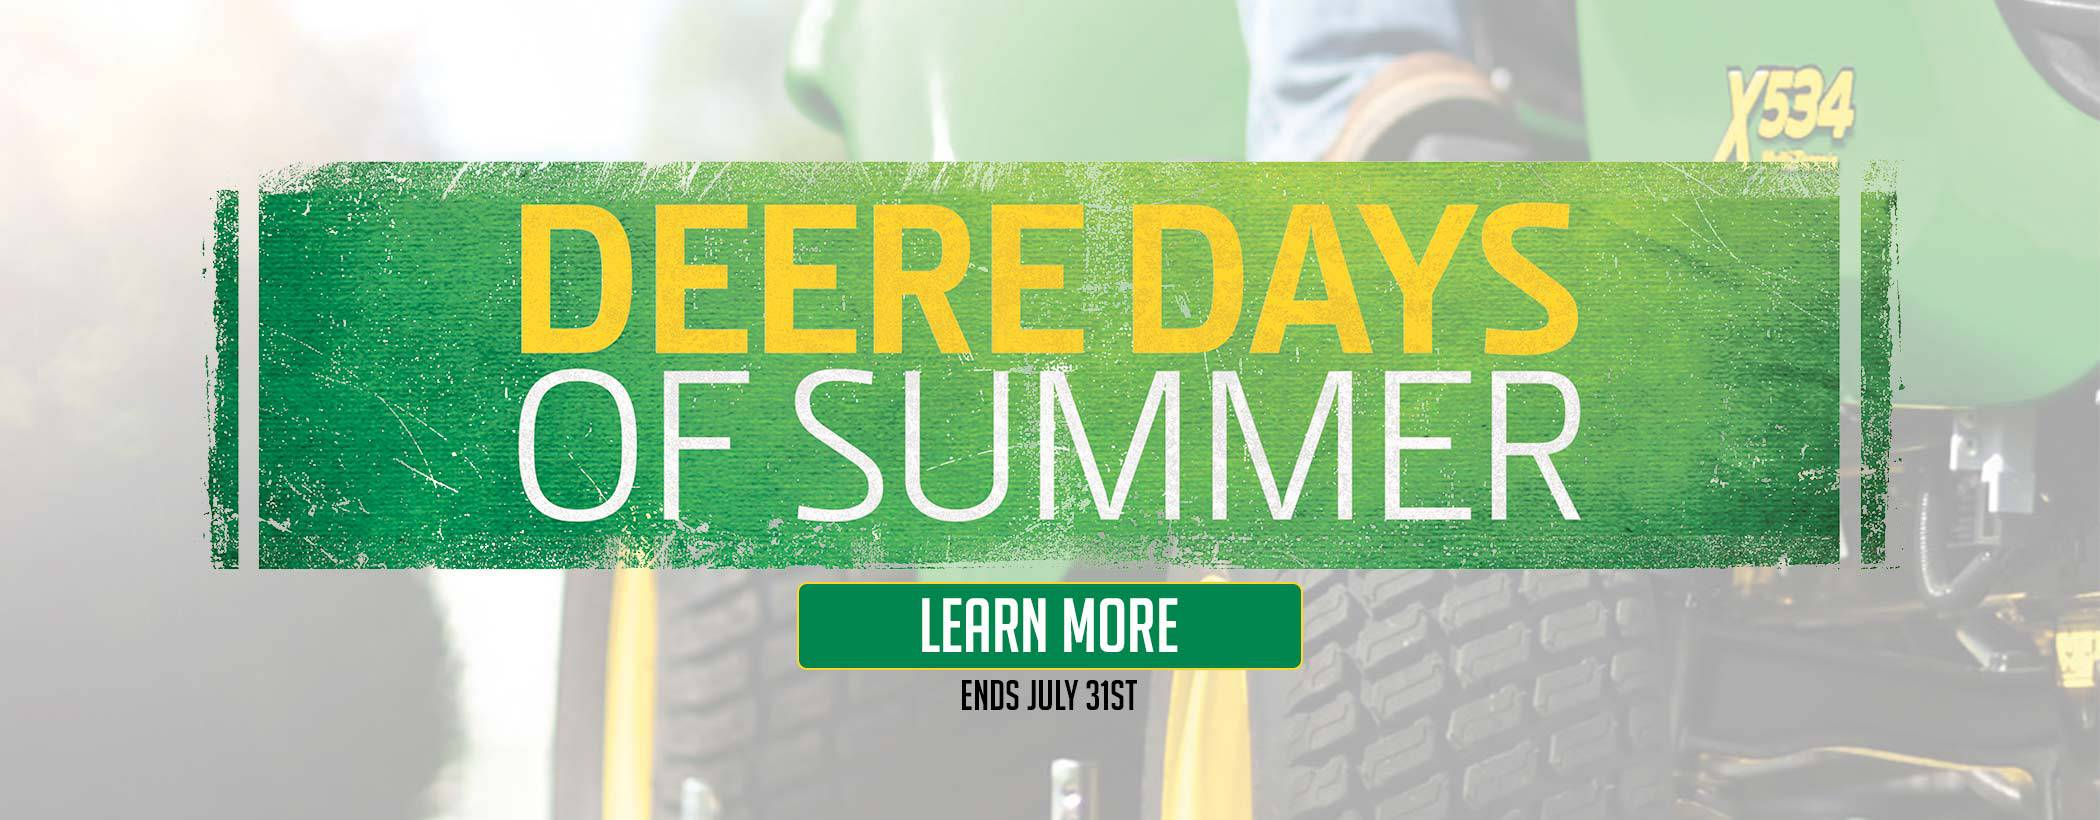 Deere Days of Summer at Mutton Power Equipment